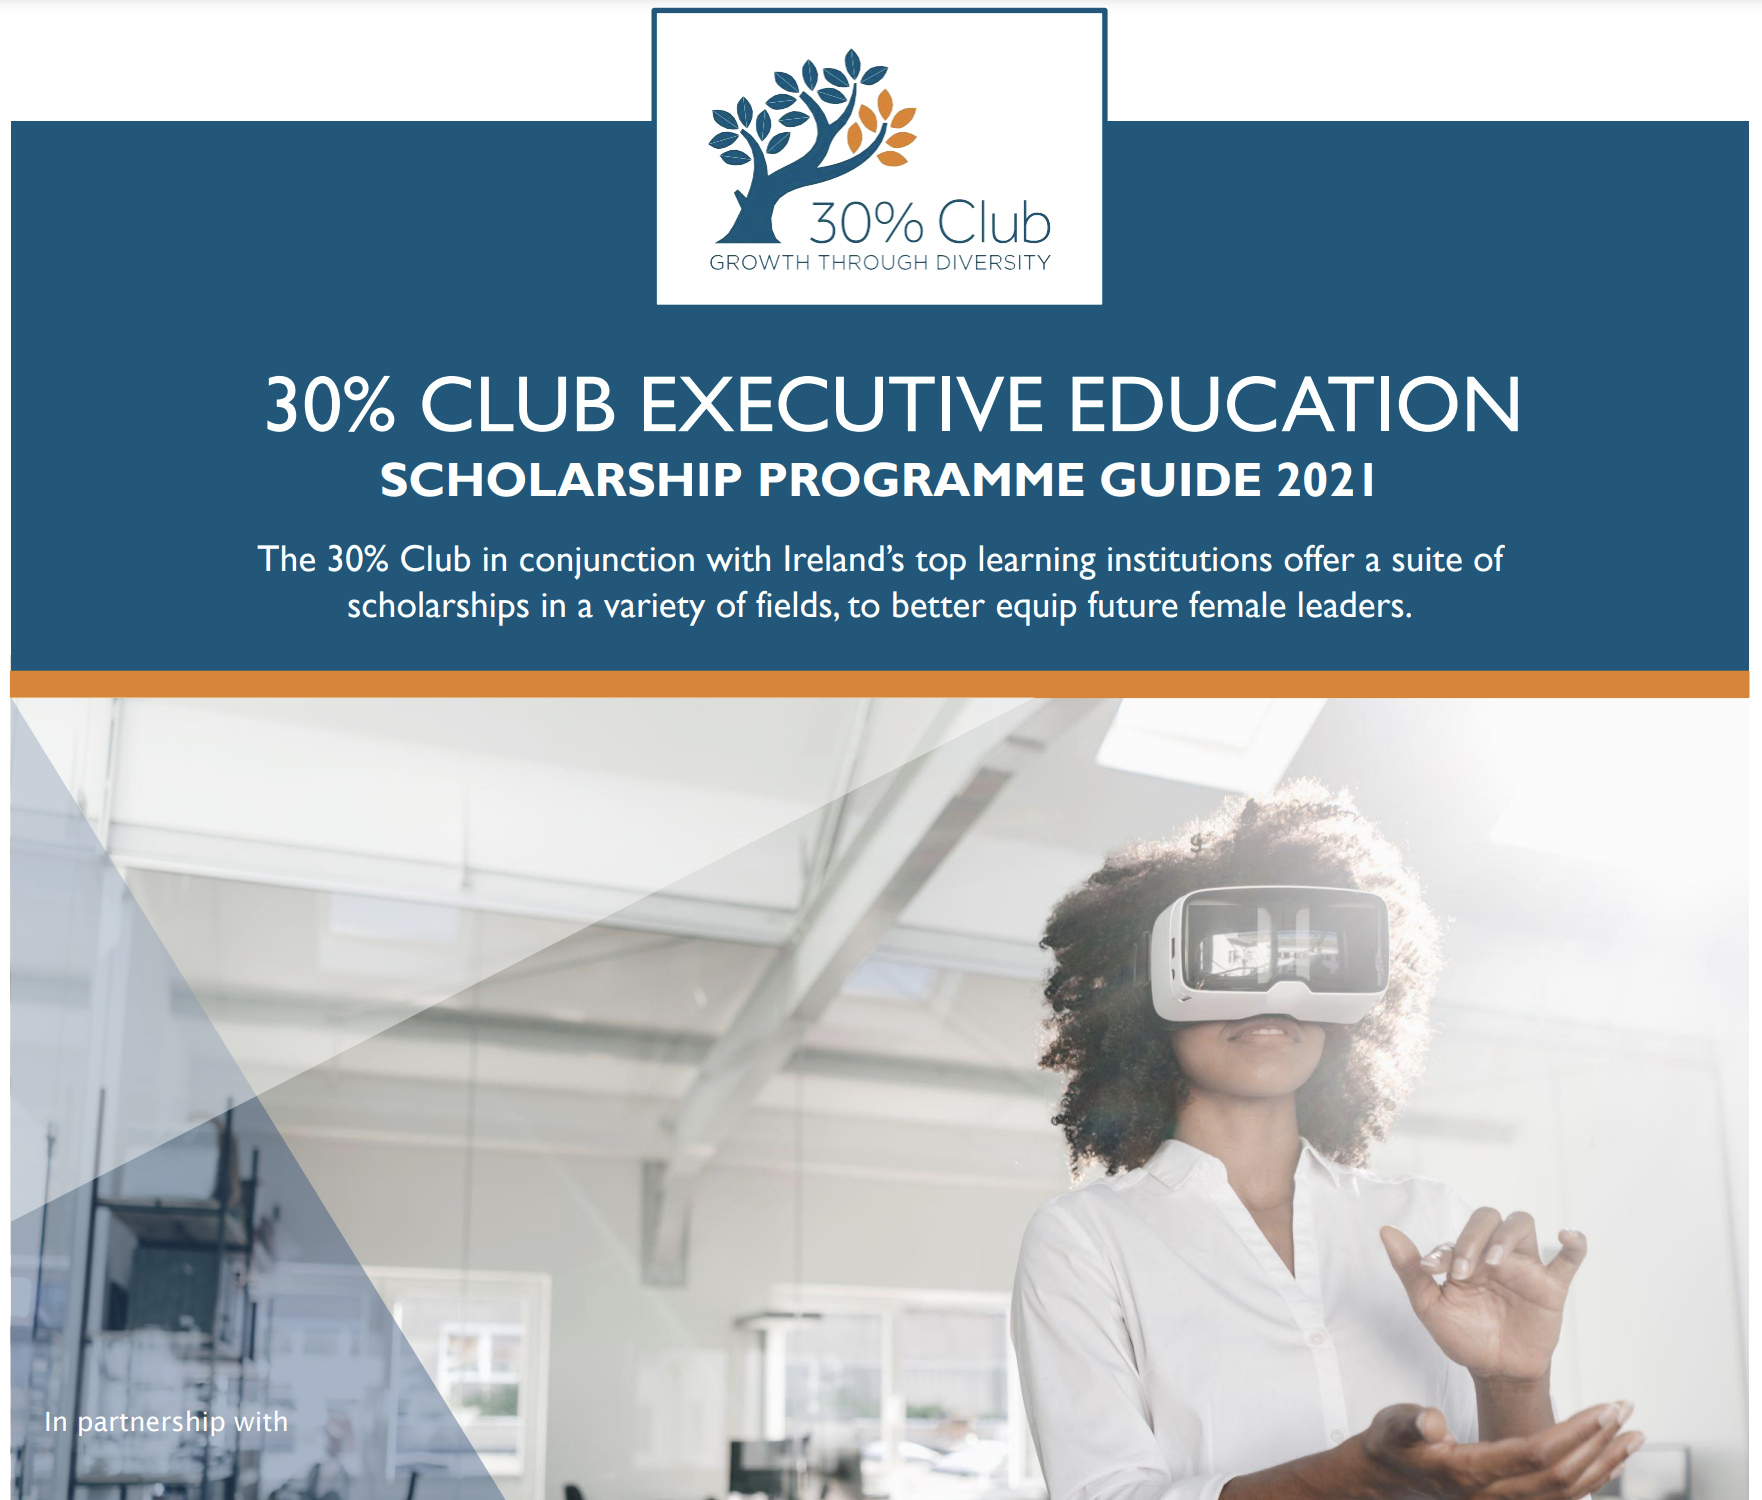 30% Club launches the Executive Education Scholarship Programme